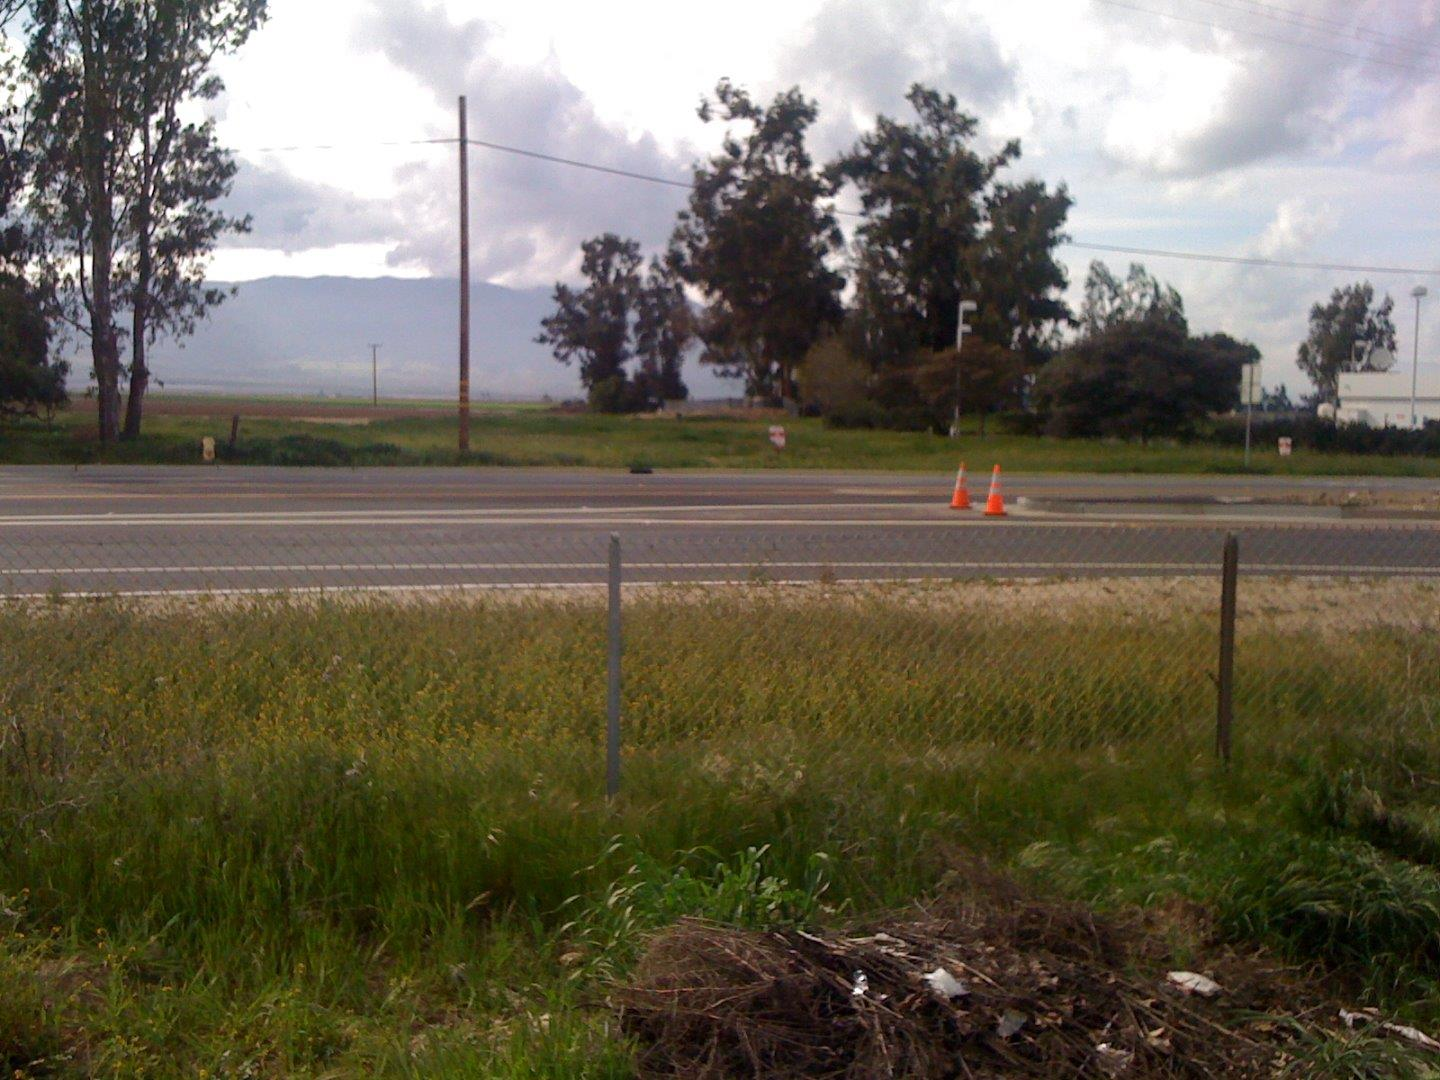 Land for Sale at 875 El Camino Real Greenfield, California 93927 United States